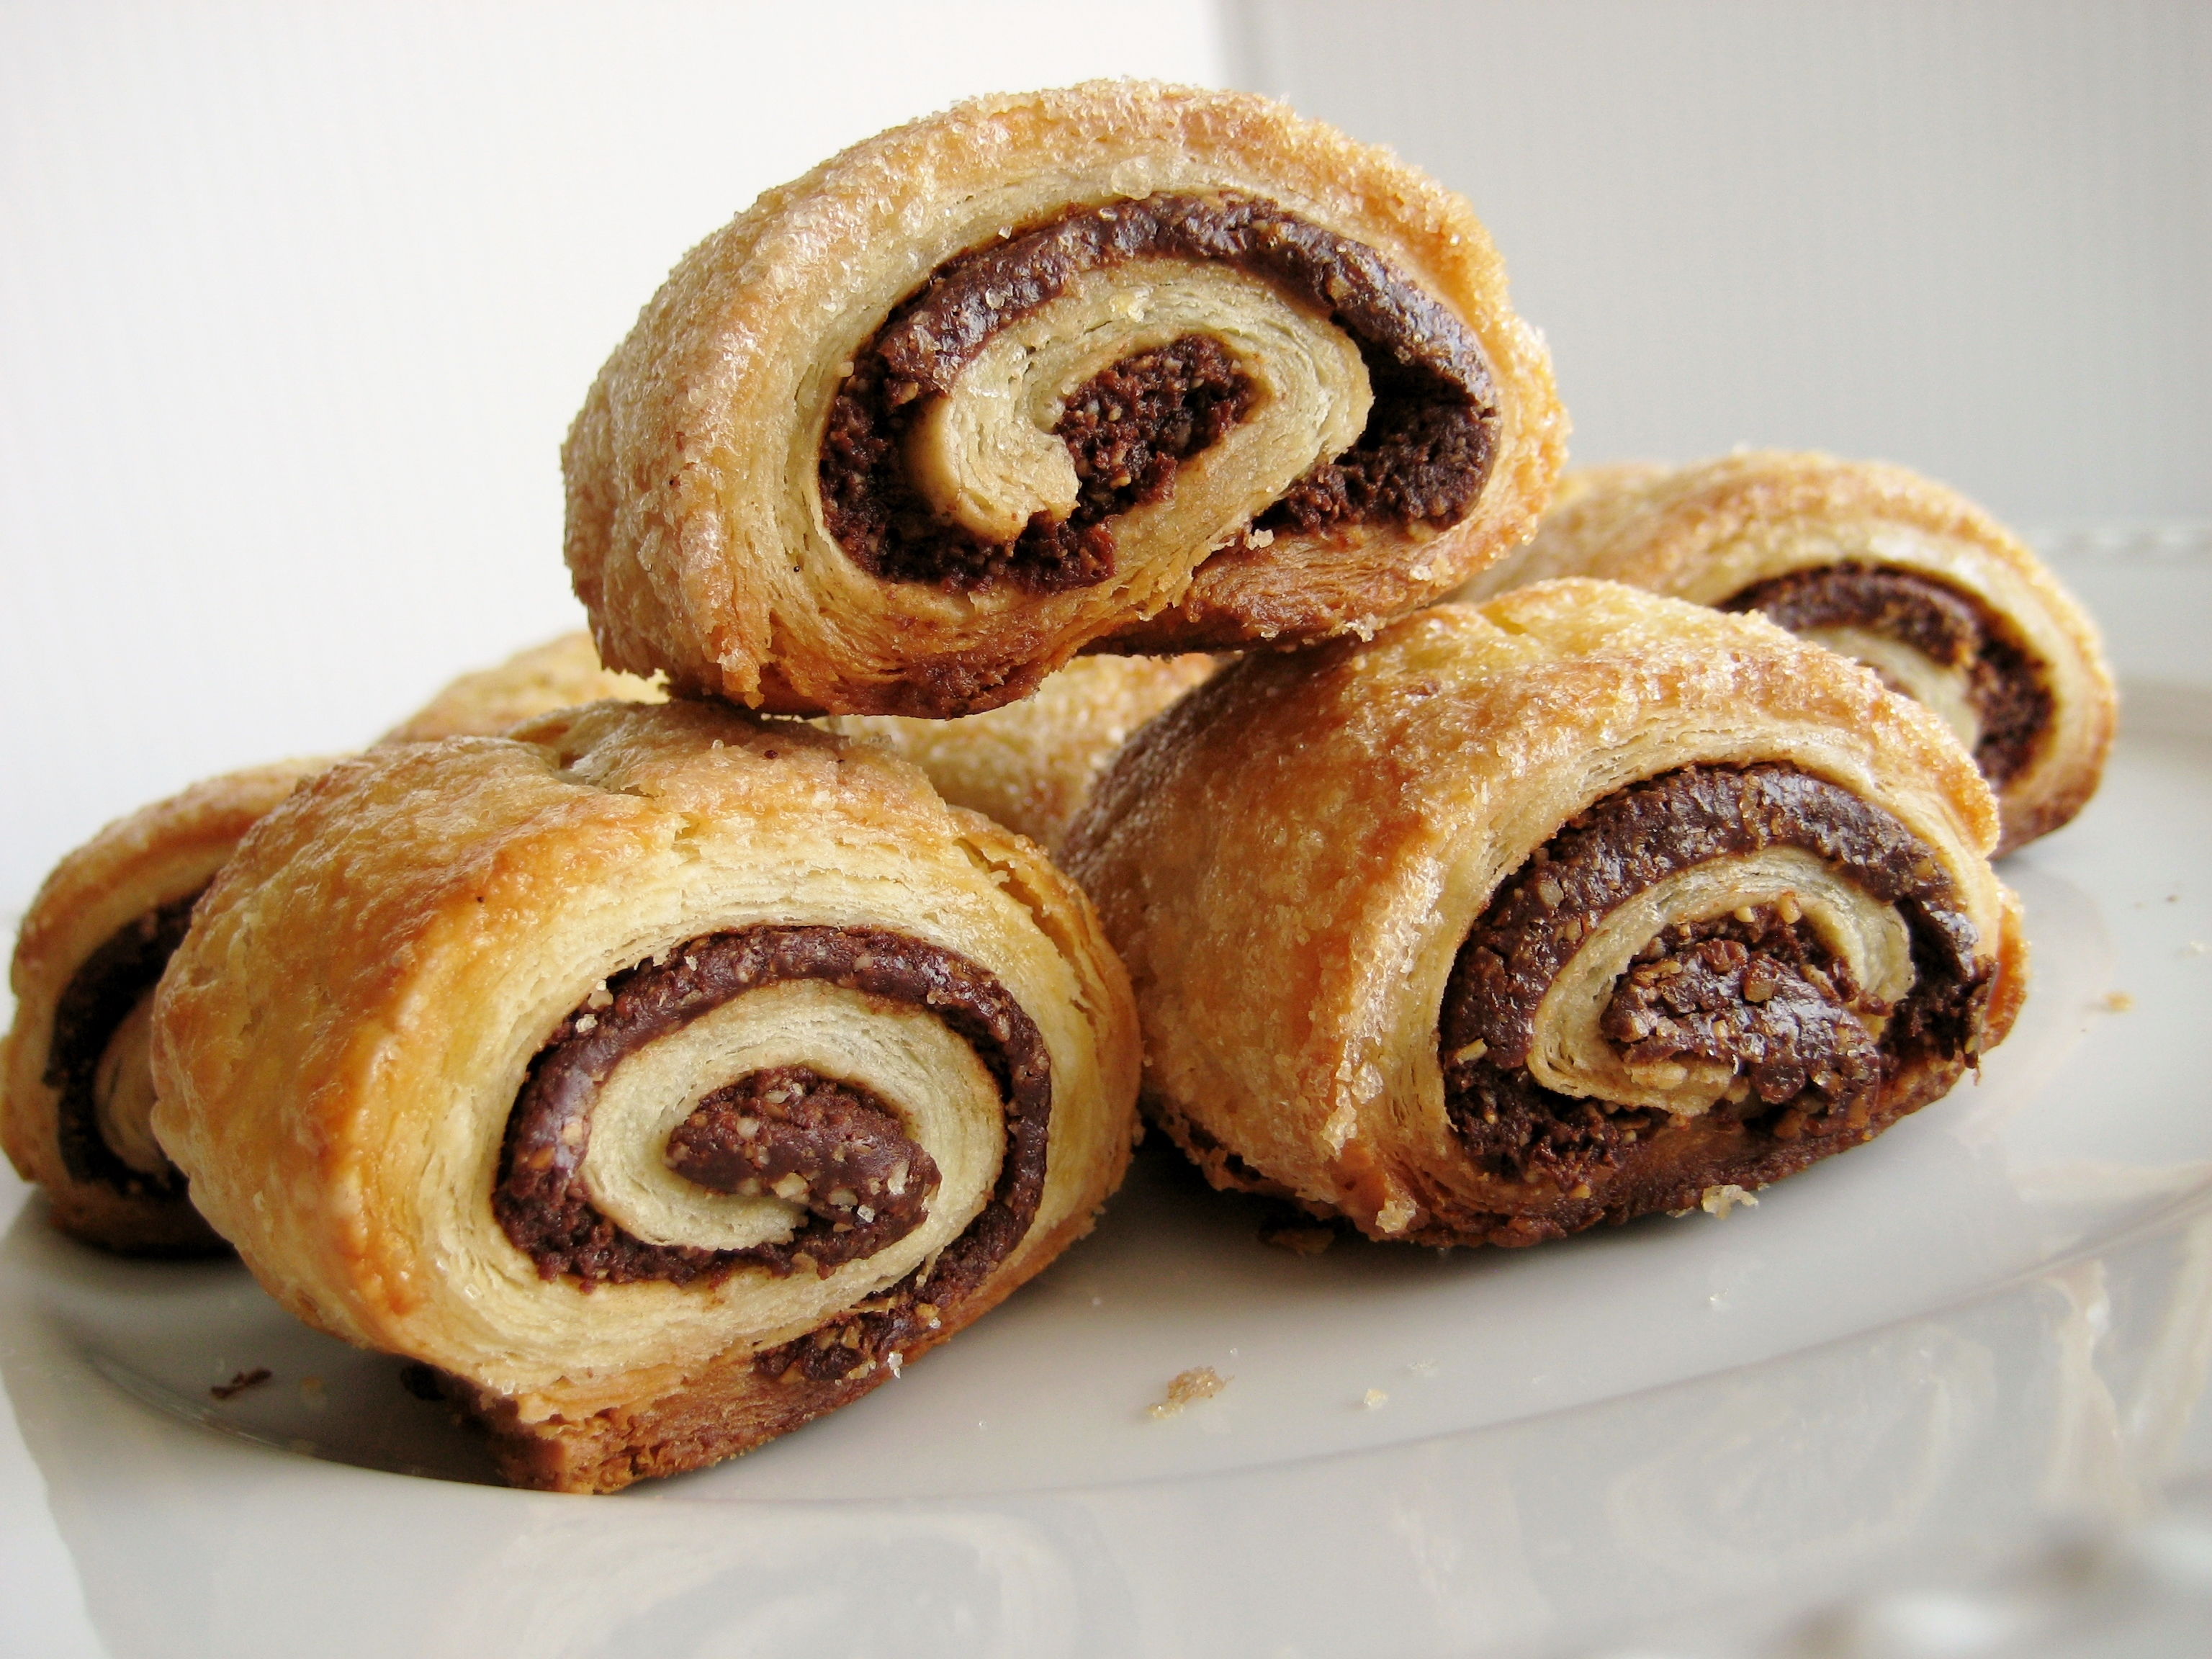 Making Chocolate-Hazelnut Rugelach | The Dough House